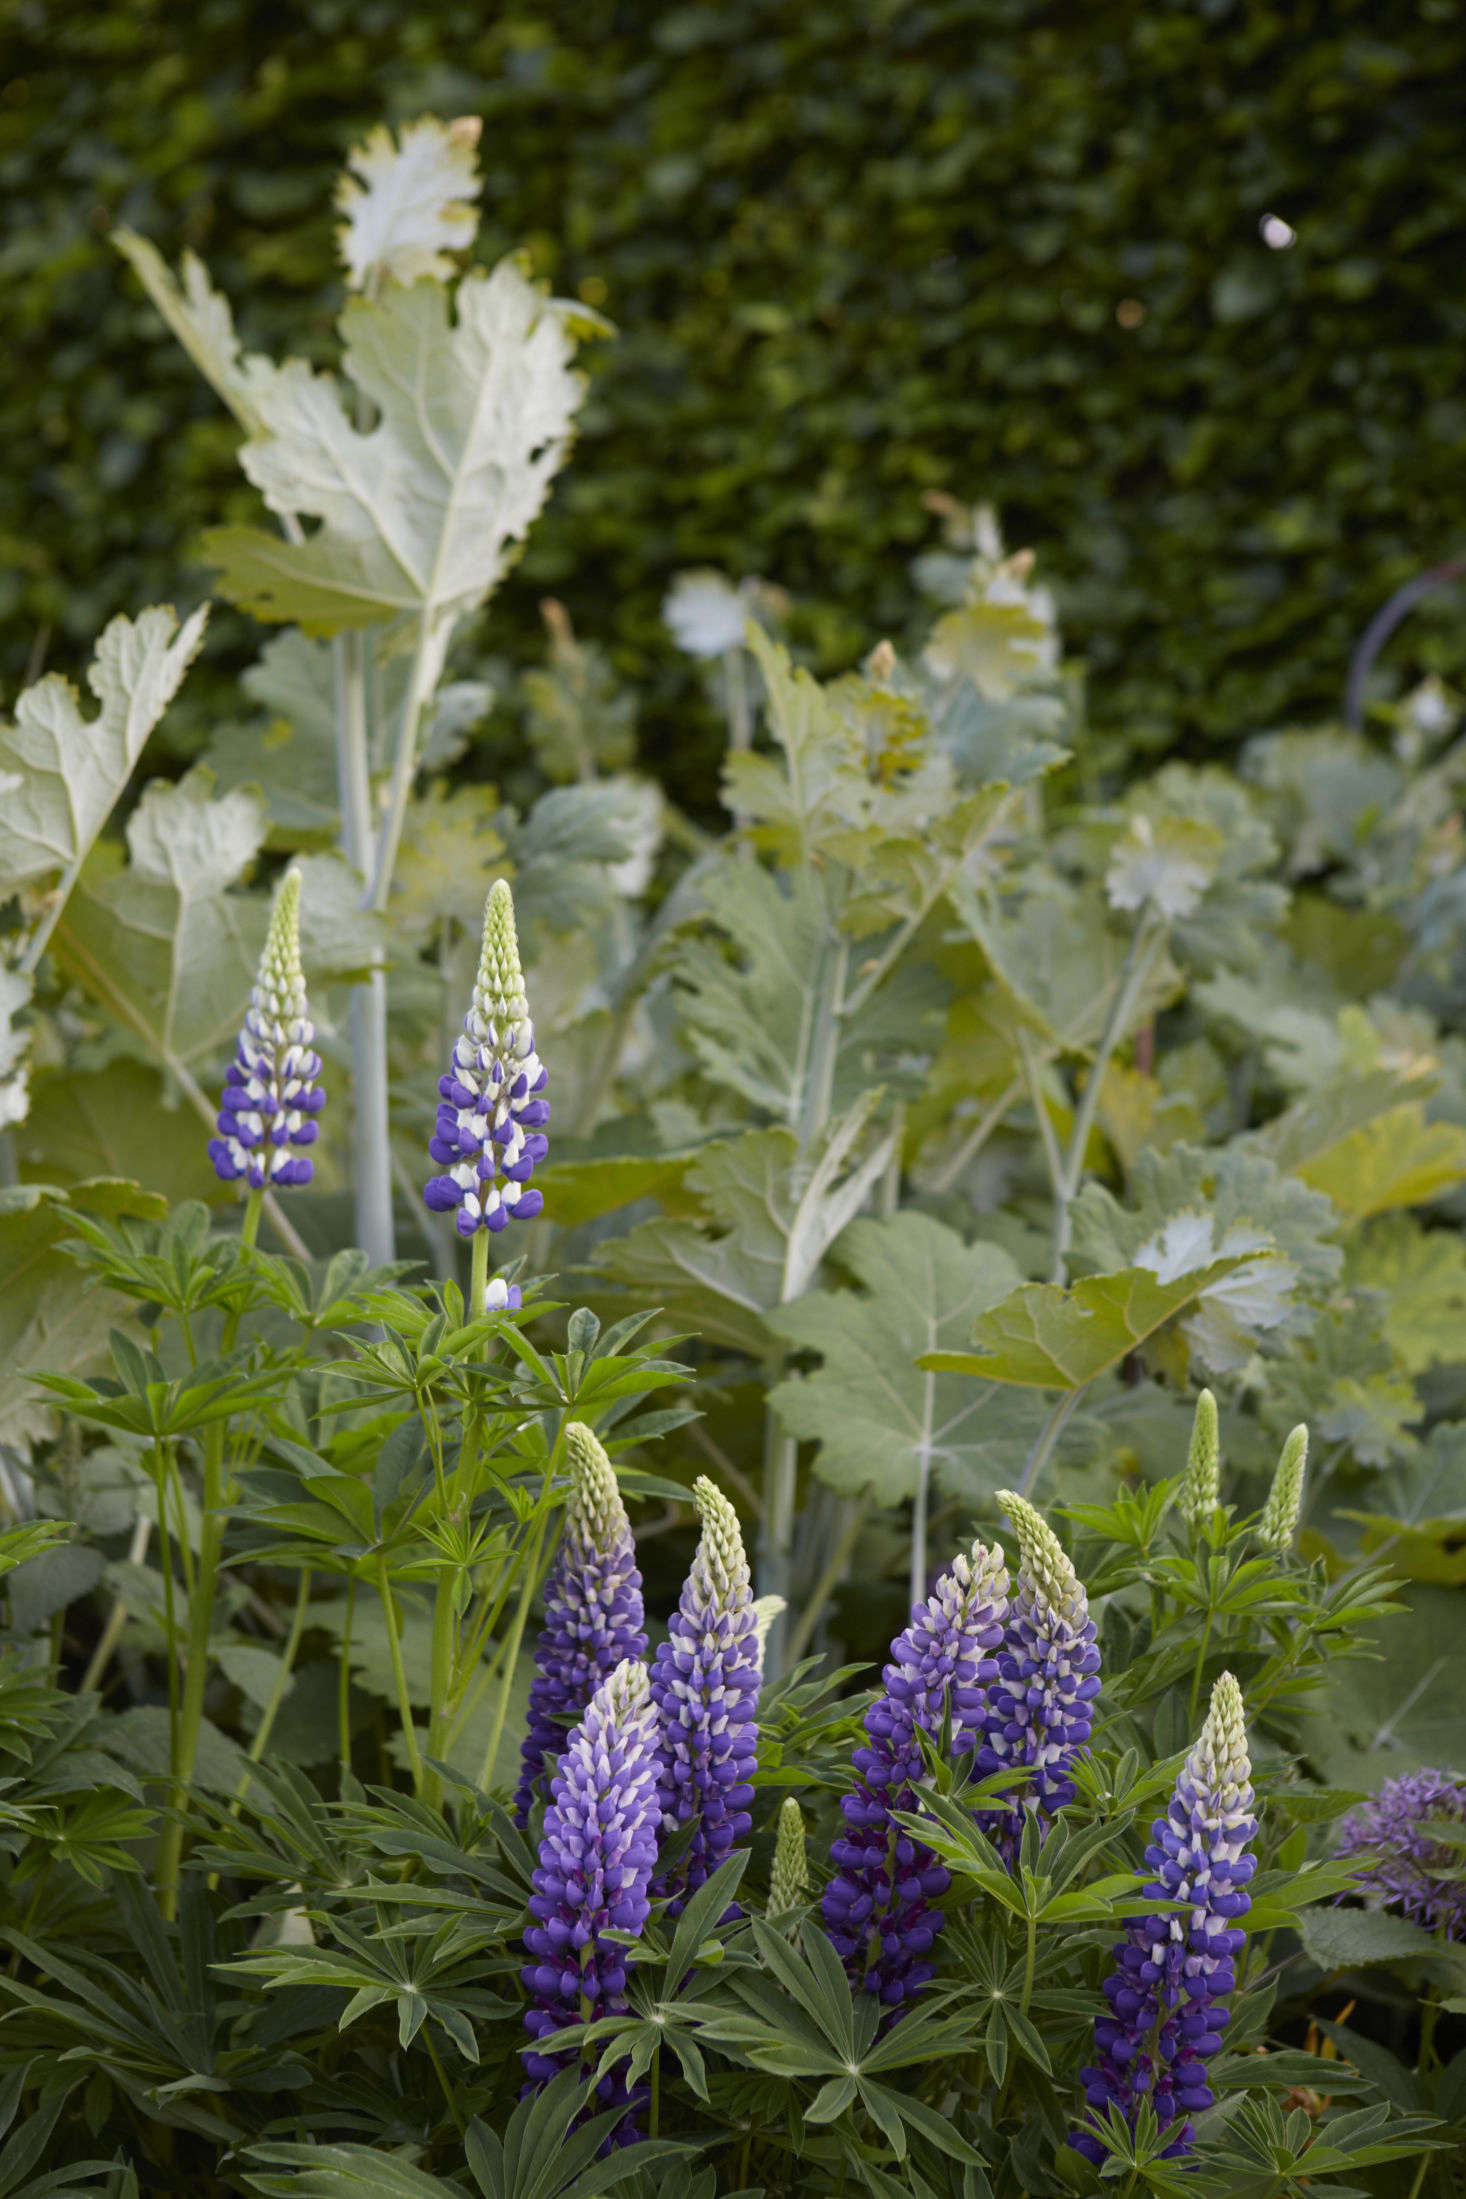 Deep purple flowers and sturdy spikes are a mark of Russell hybrids, the floriferous lupines that 19th-century English horticulturalist George Russell devoted a lifetime to creating.